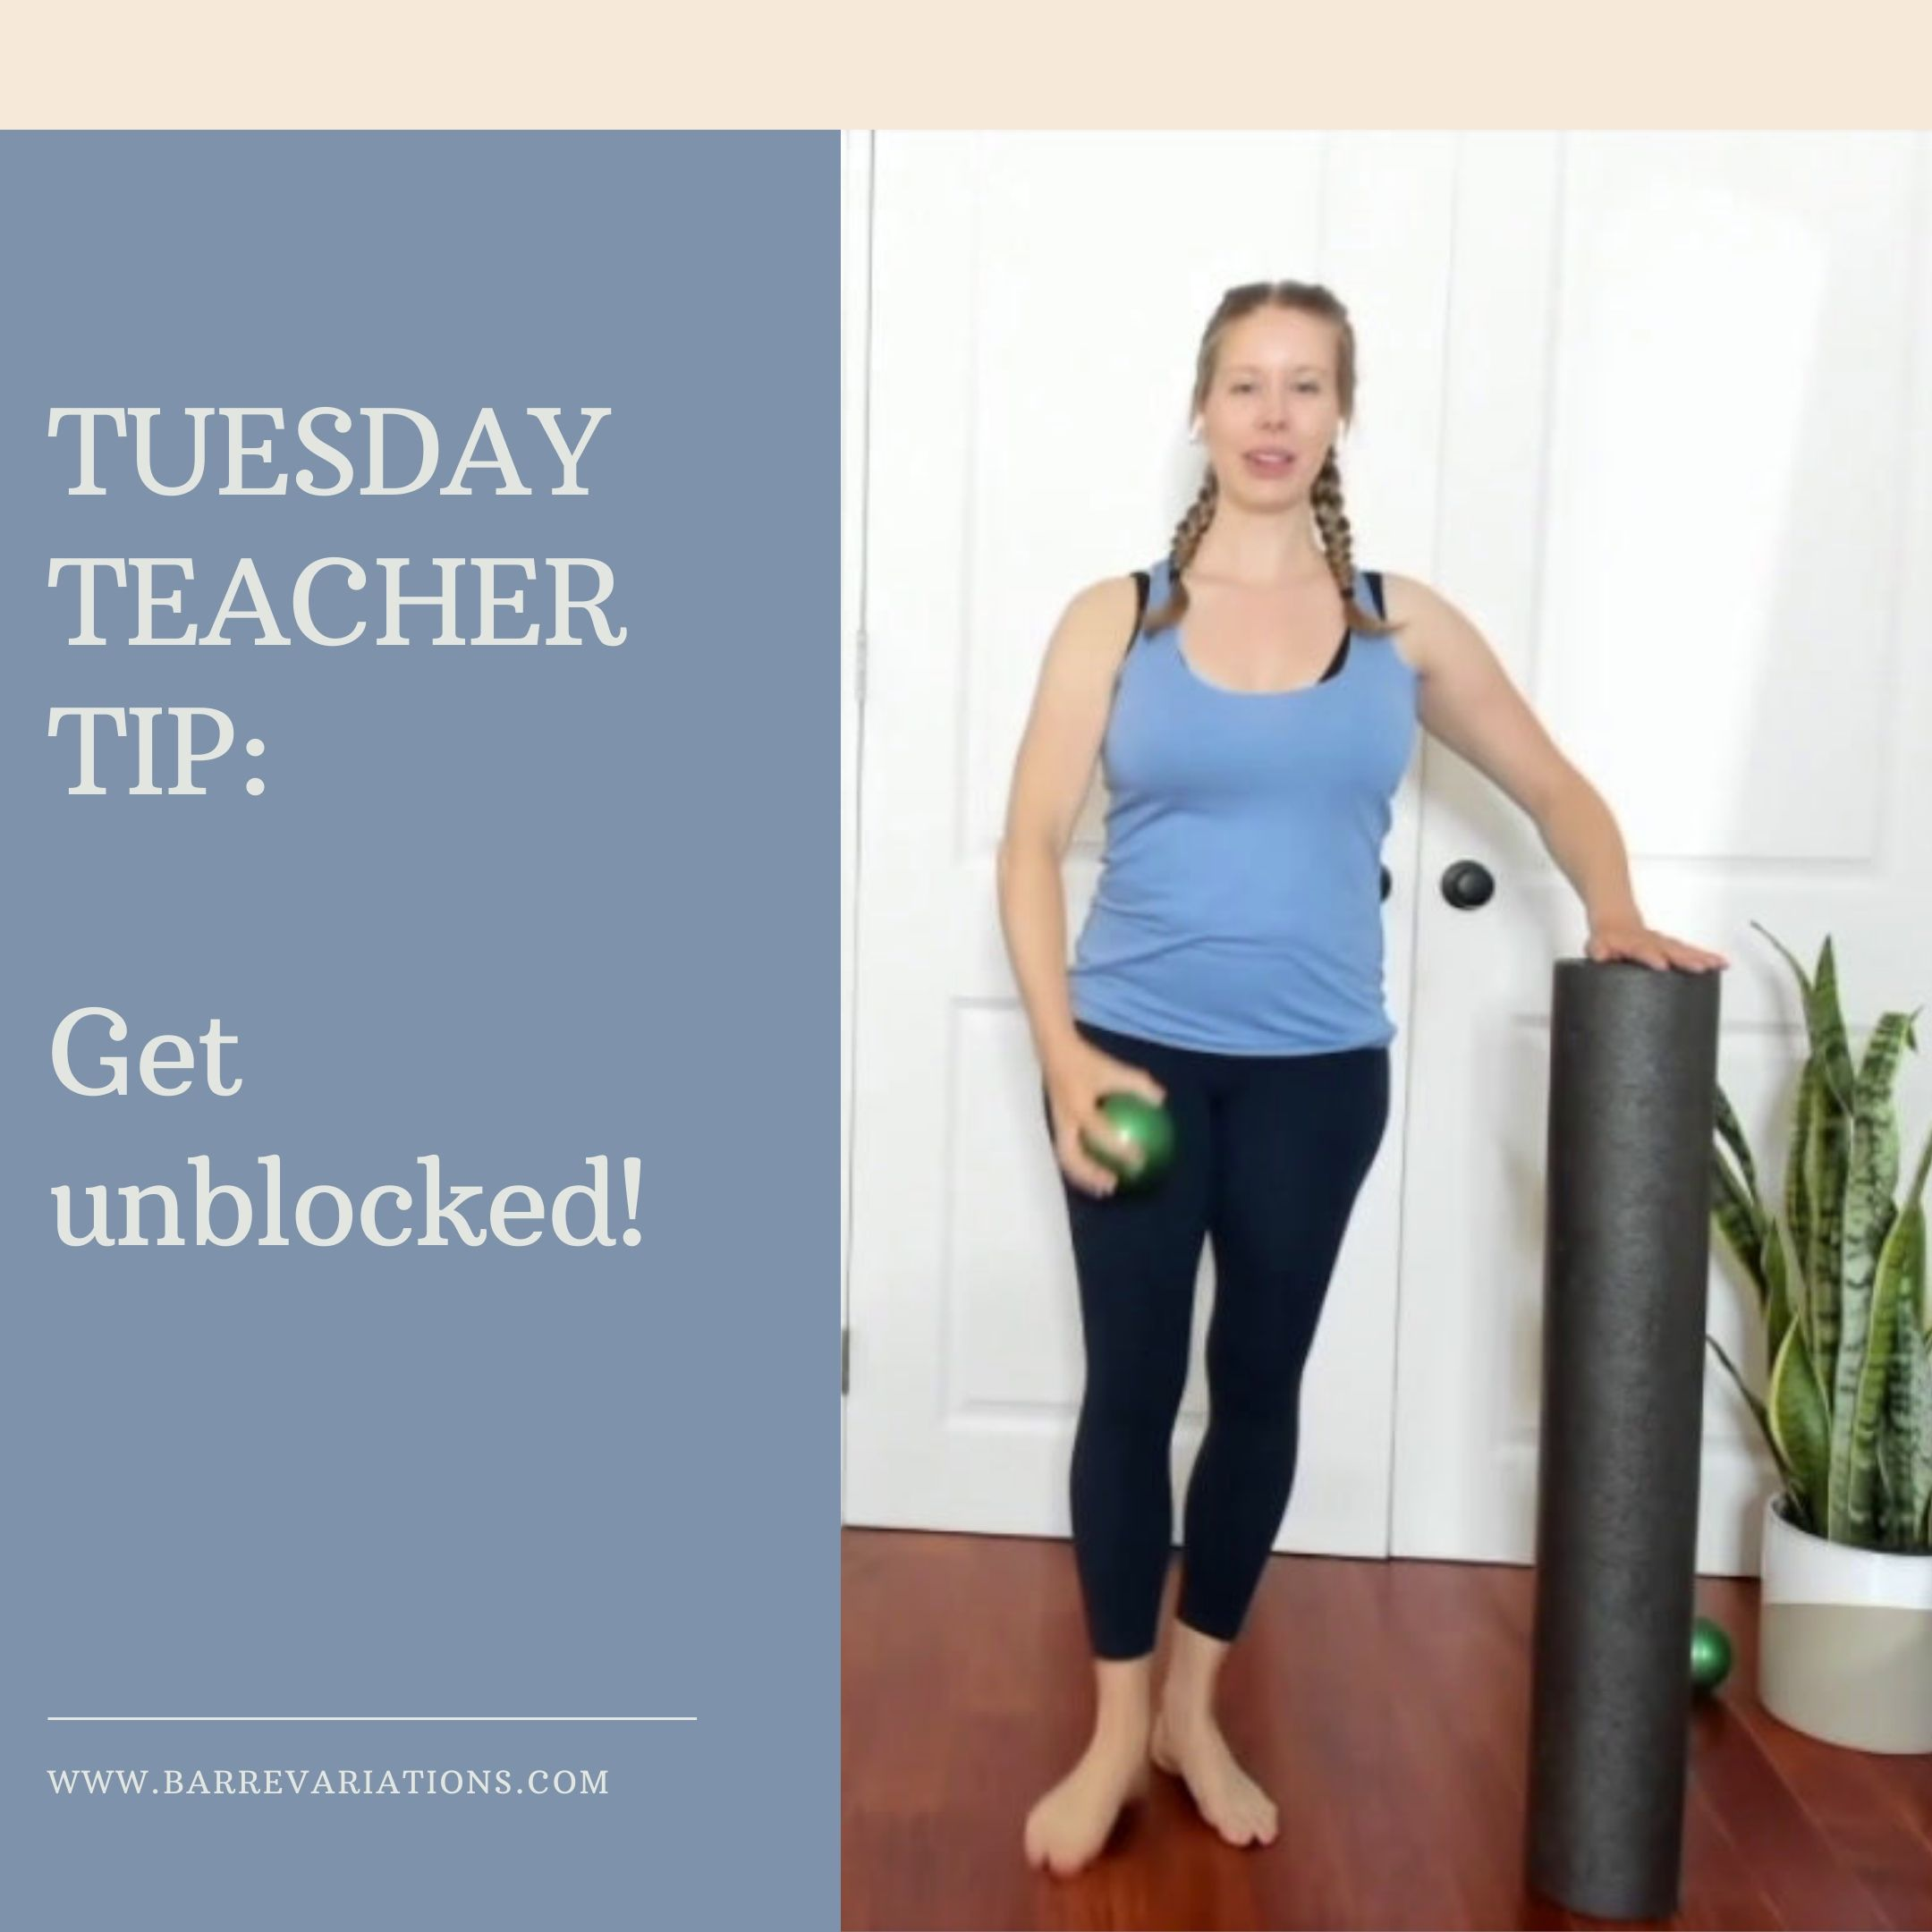 image that says get unblocked with woman working out at home